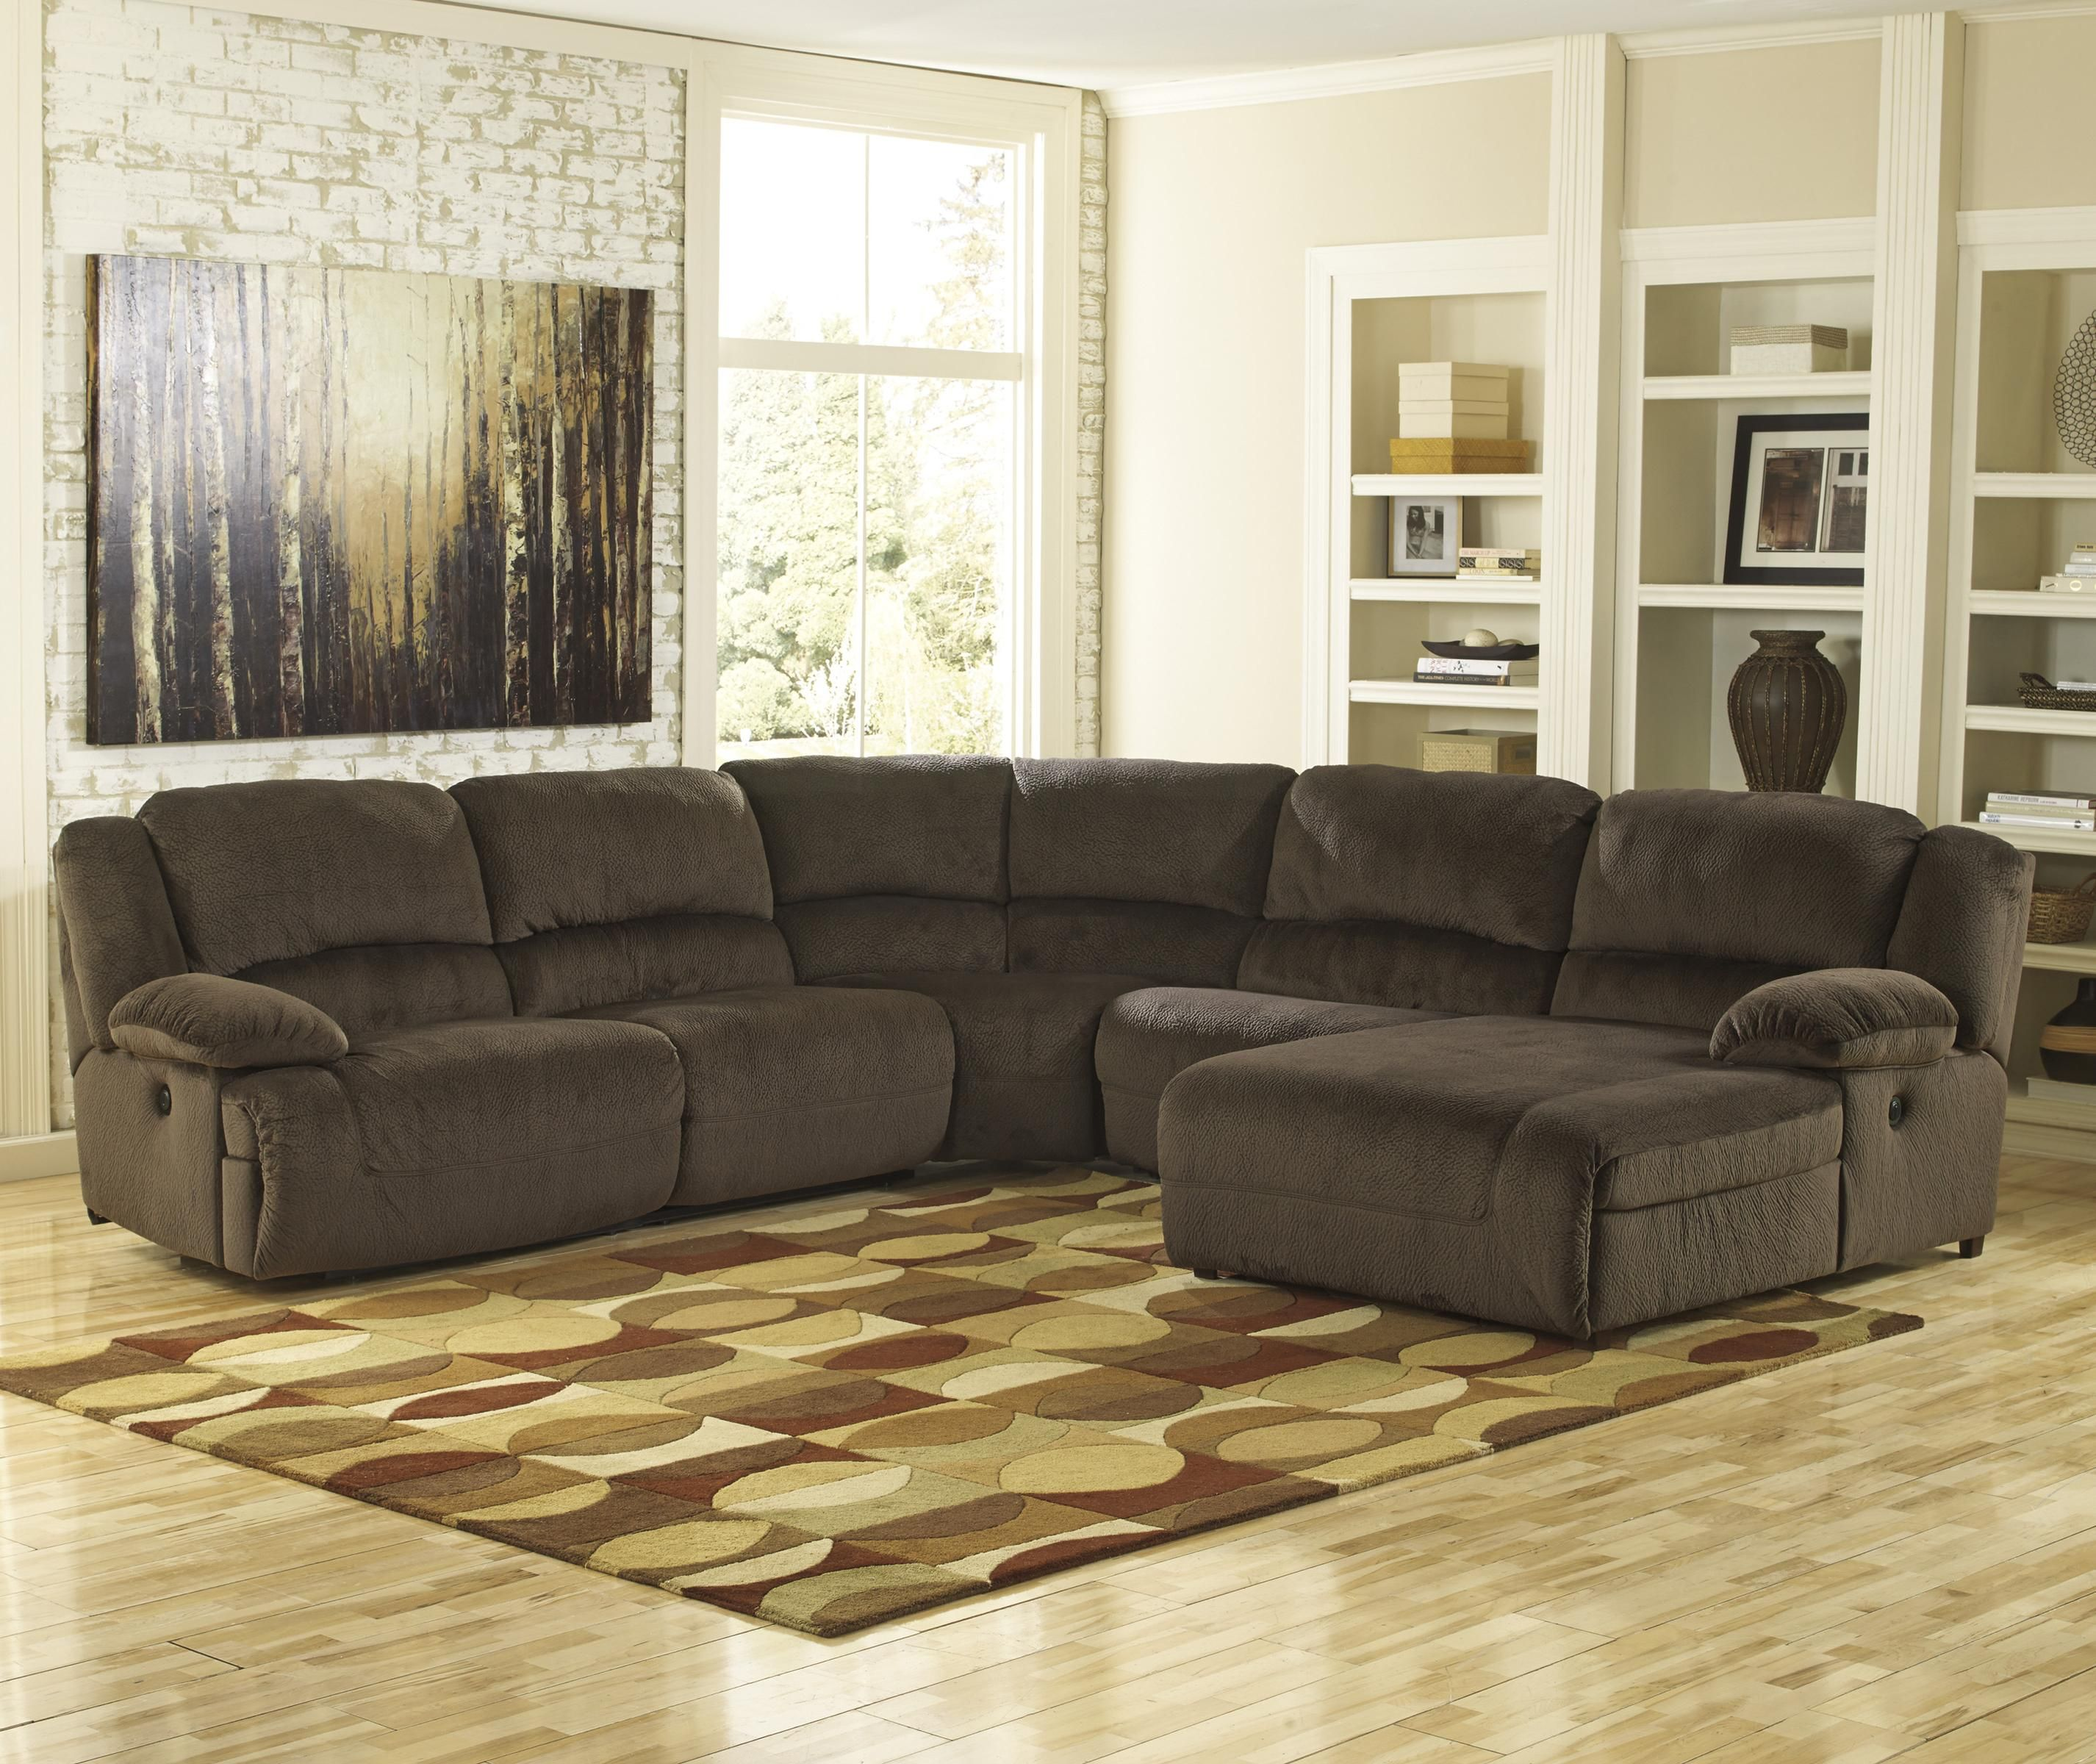 Charming Shop For The Ashley Signature Design Toletta   Chocolate Reclining Sectional  W/ Console U0026 Chaise At Dunk U0026 Bright Furniture   Your Syracuse, Utica, ...